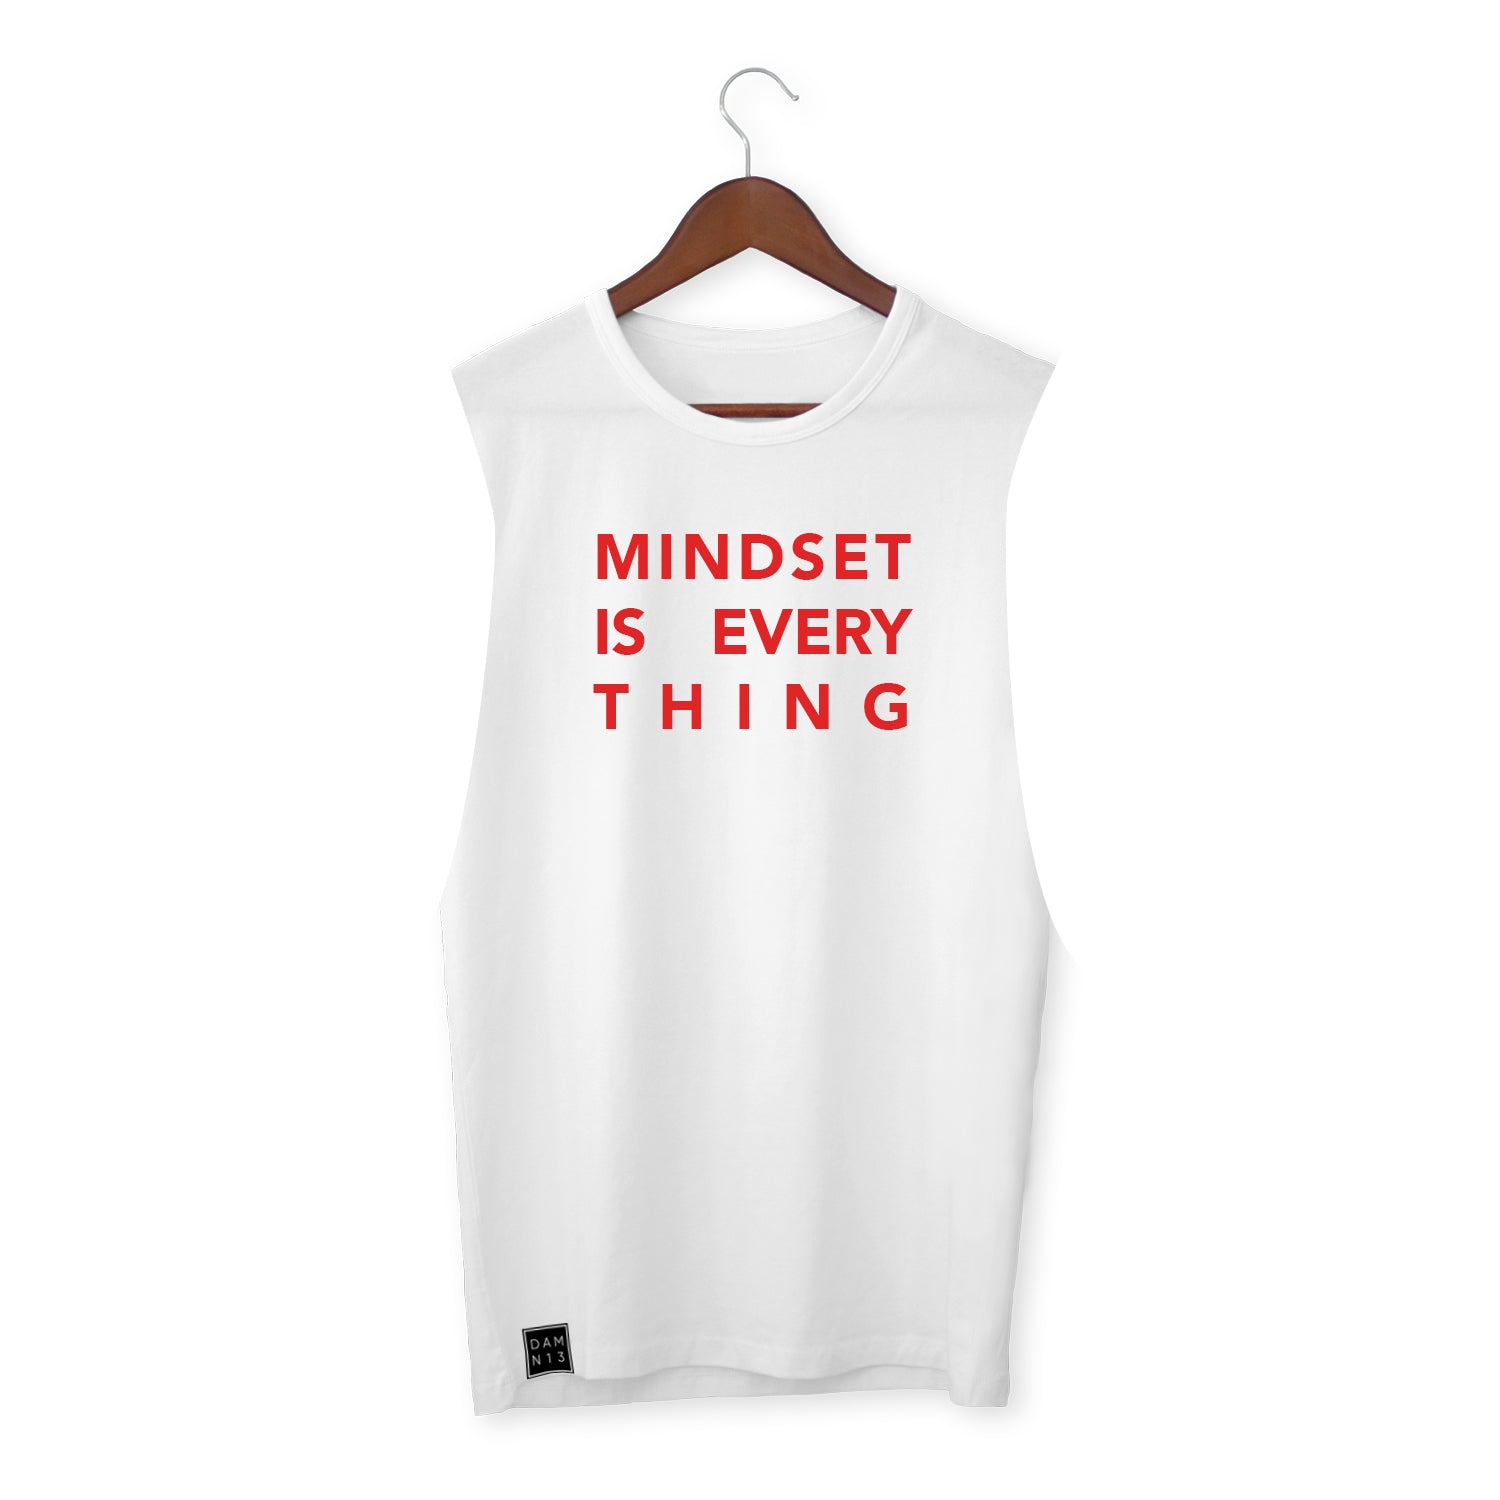 WHITE VEST / MINDSET IS EVERYTHING